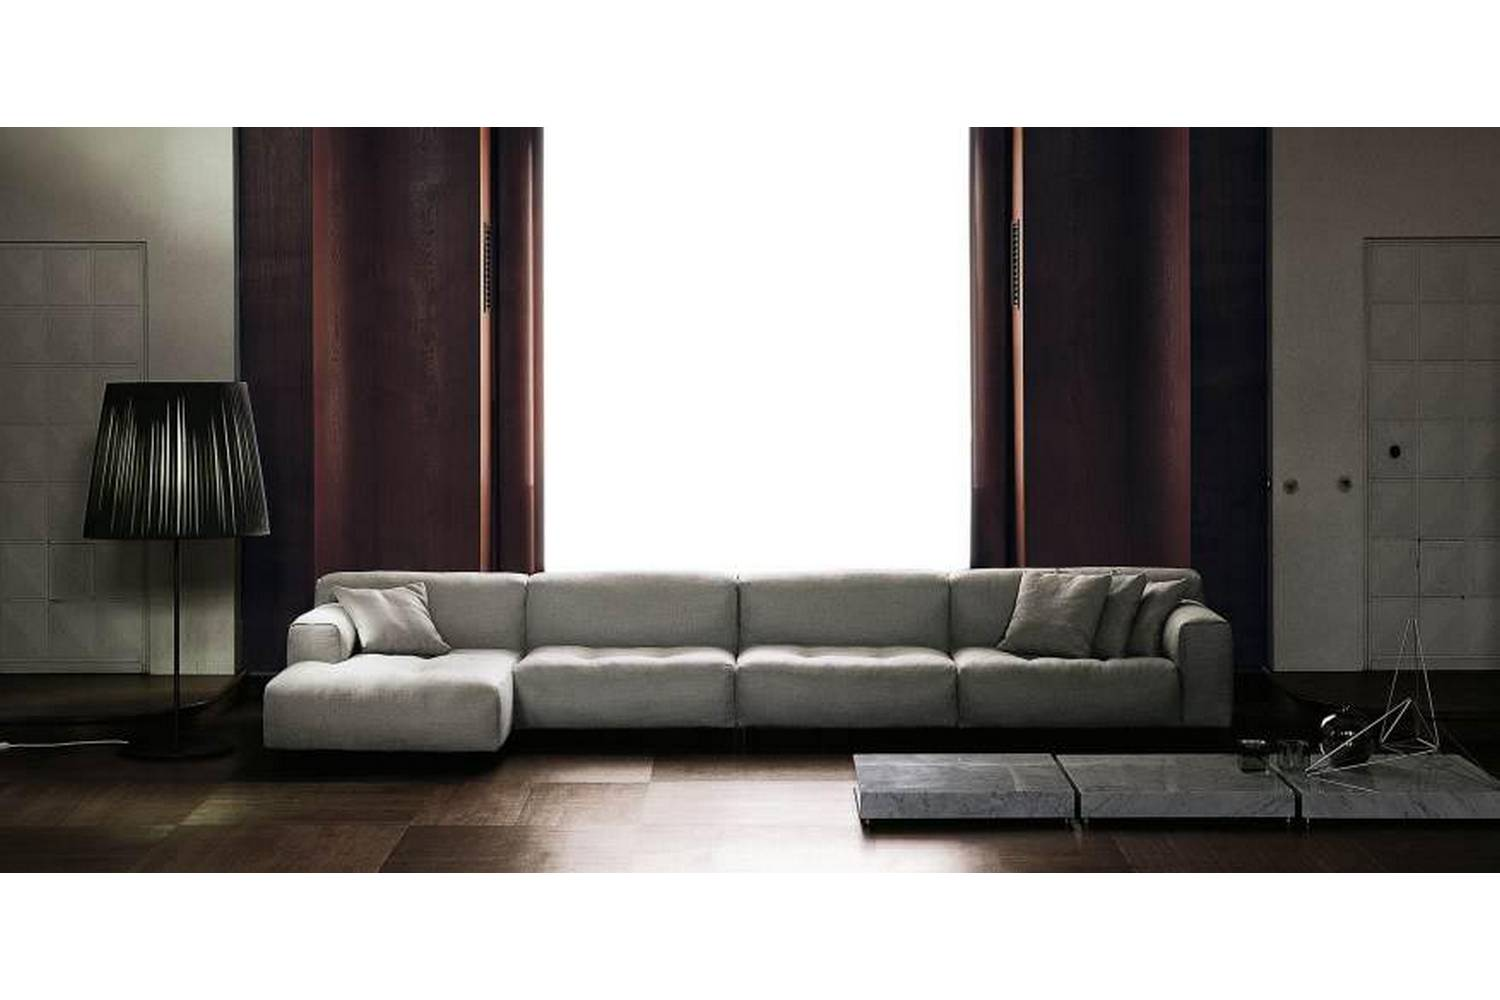 Living Divani The Wall Sofa Softwall Sofa By Piero Lissoni For Living Divani Space Furniture